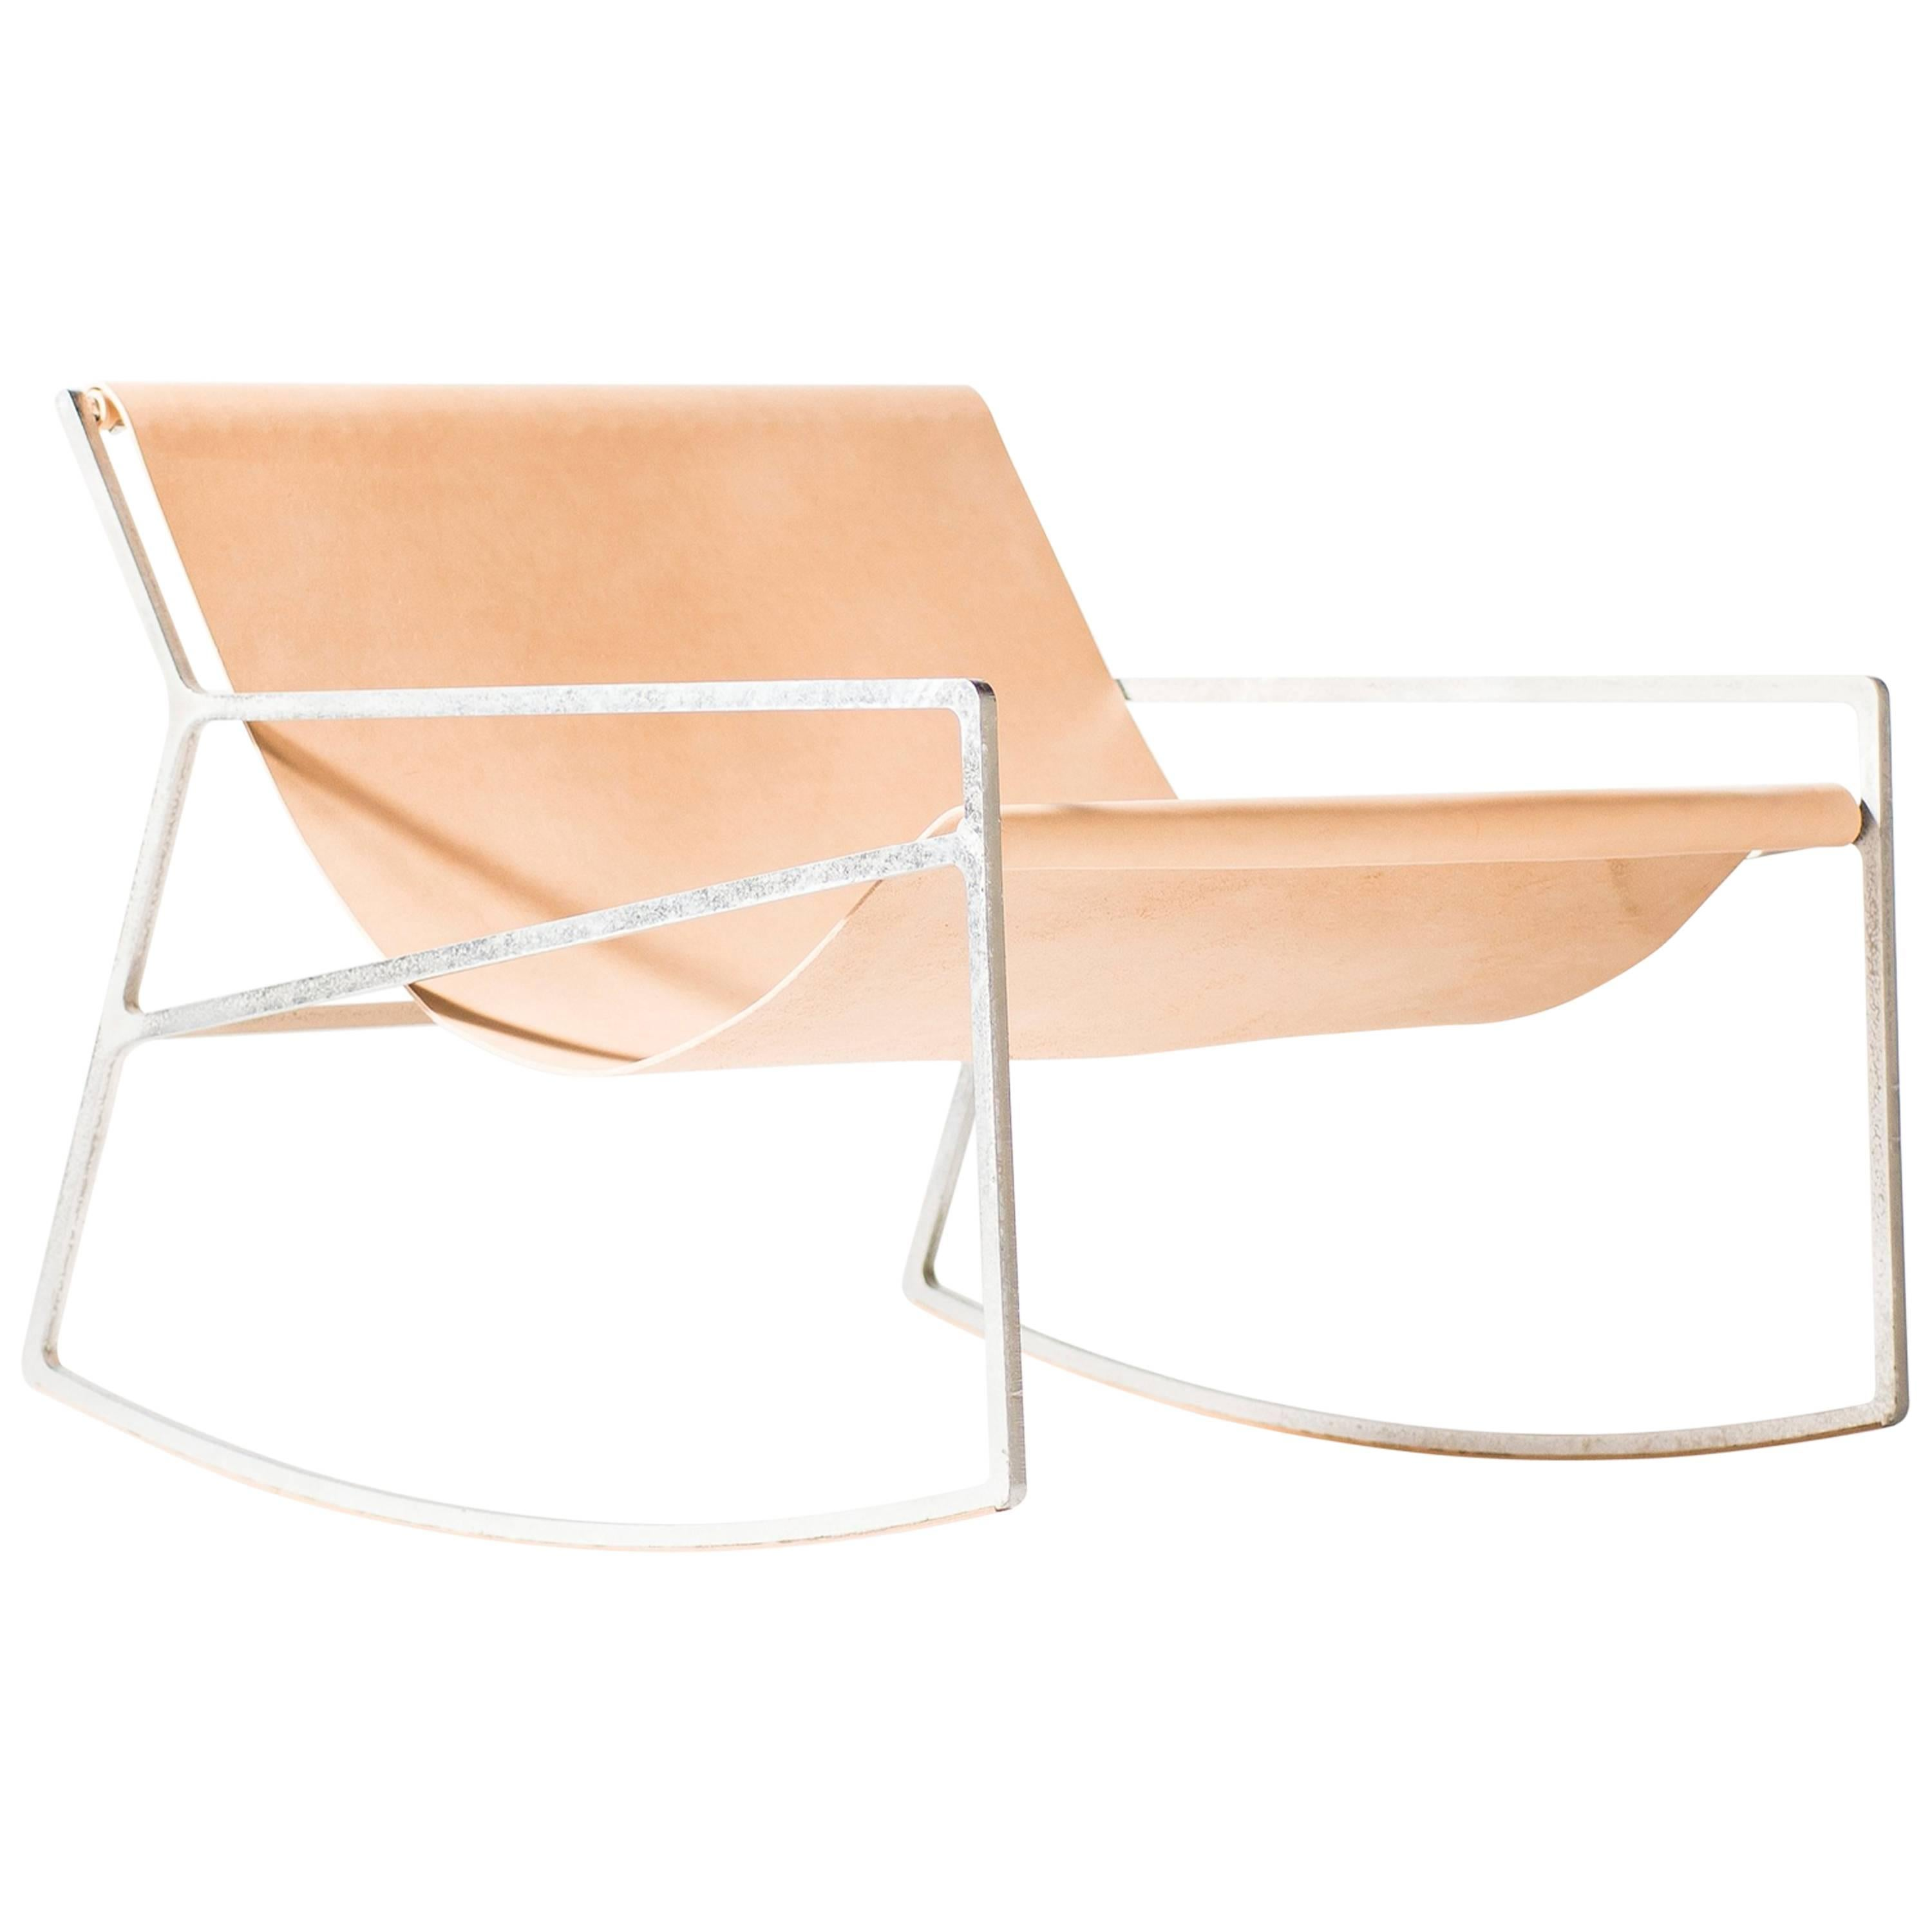 Rocking Chair In Galvanized Laser Cut Steel Frame And Veg Tan Leather Sling  1